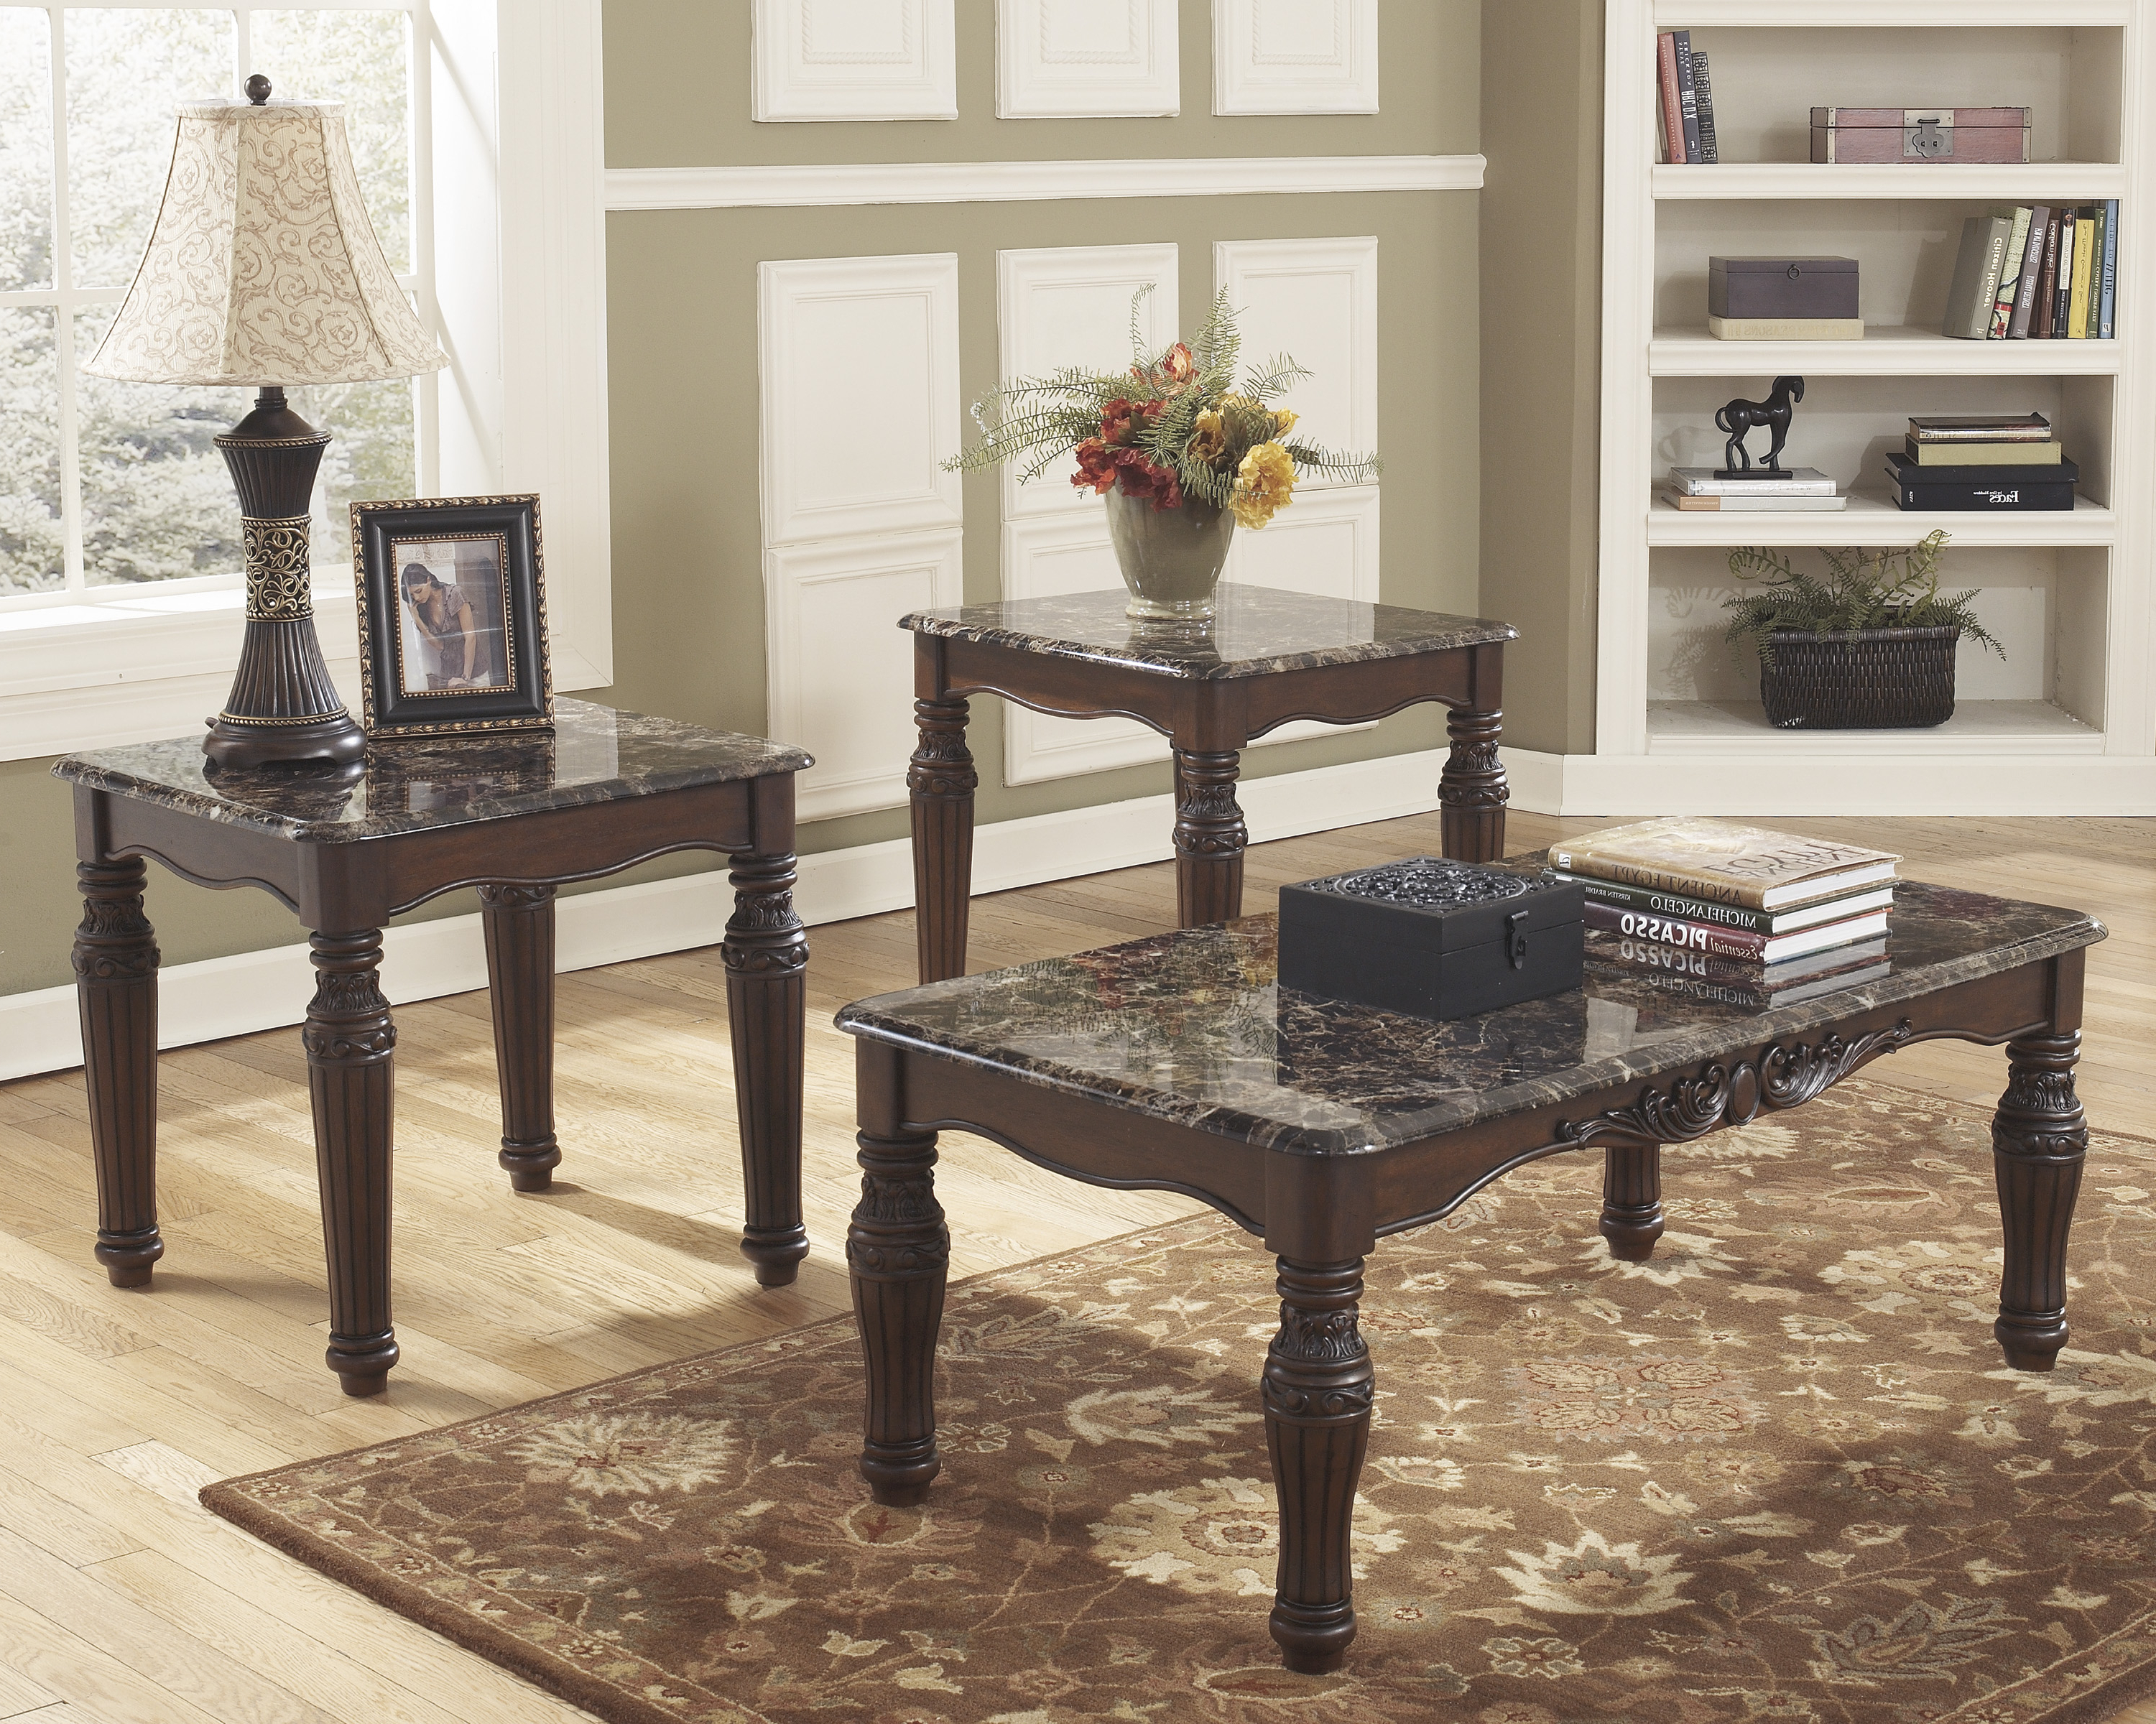 Sofa Table Chairs Regarding Most Recent North Shore Table Set – Brown's Furniture Showplace (Gallery 18 of 20)